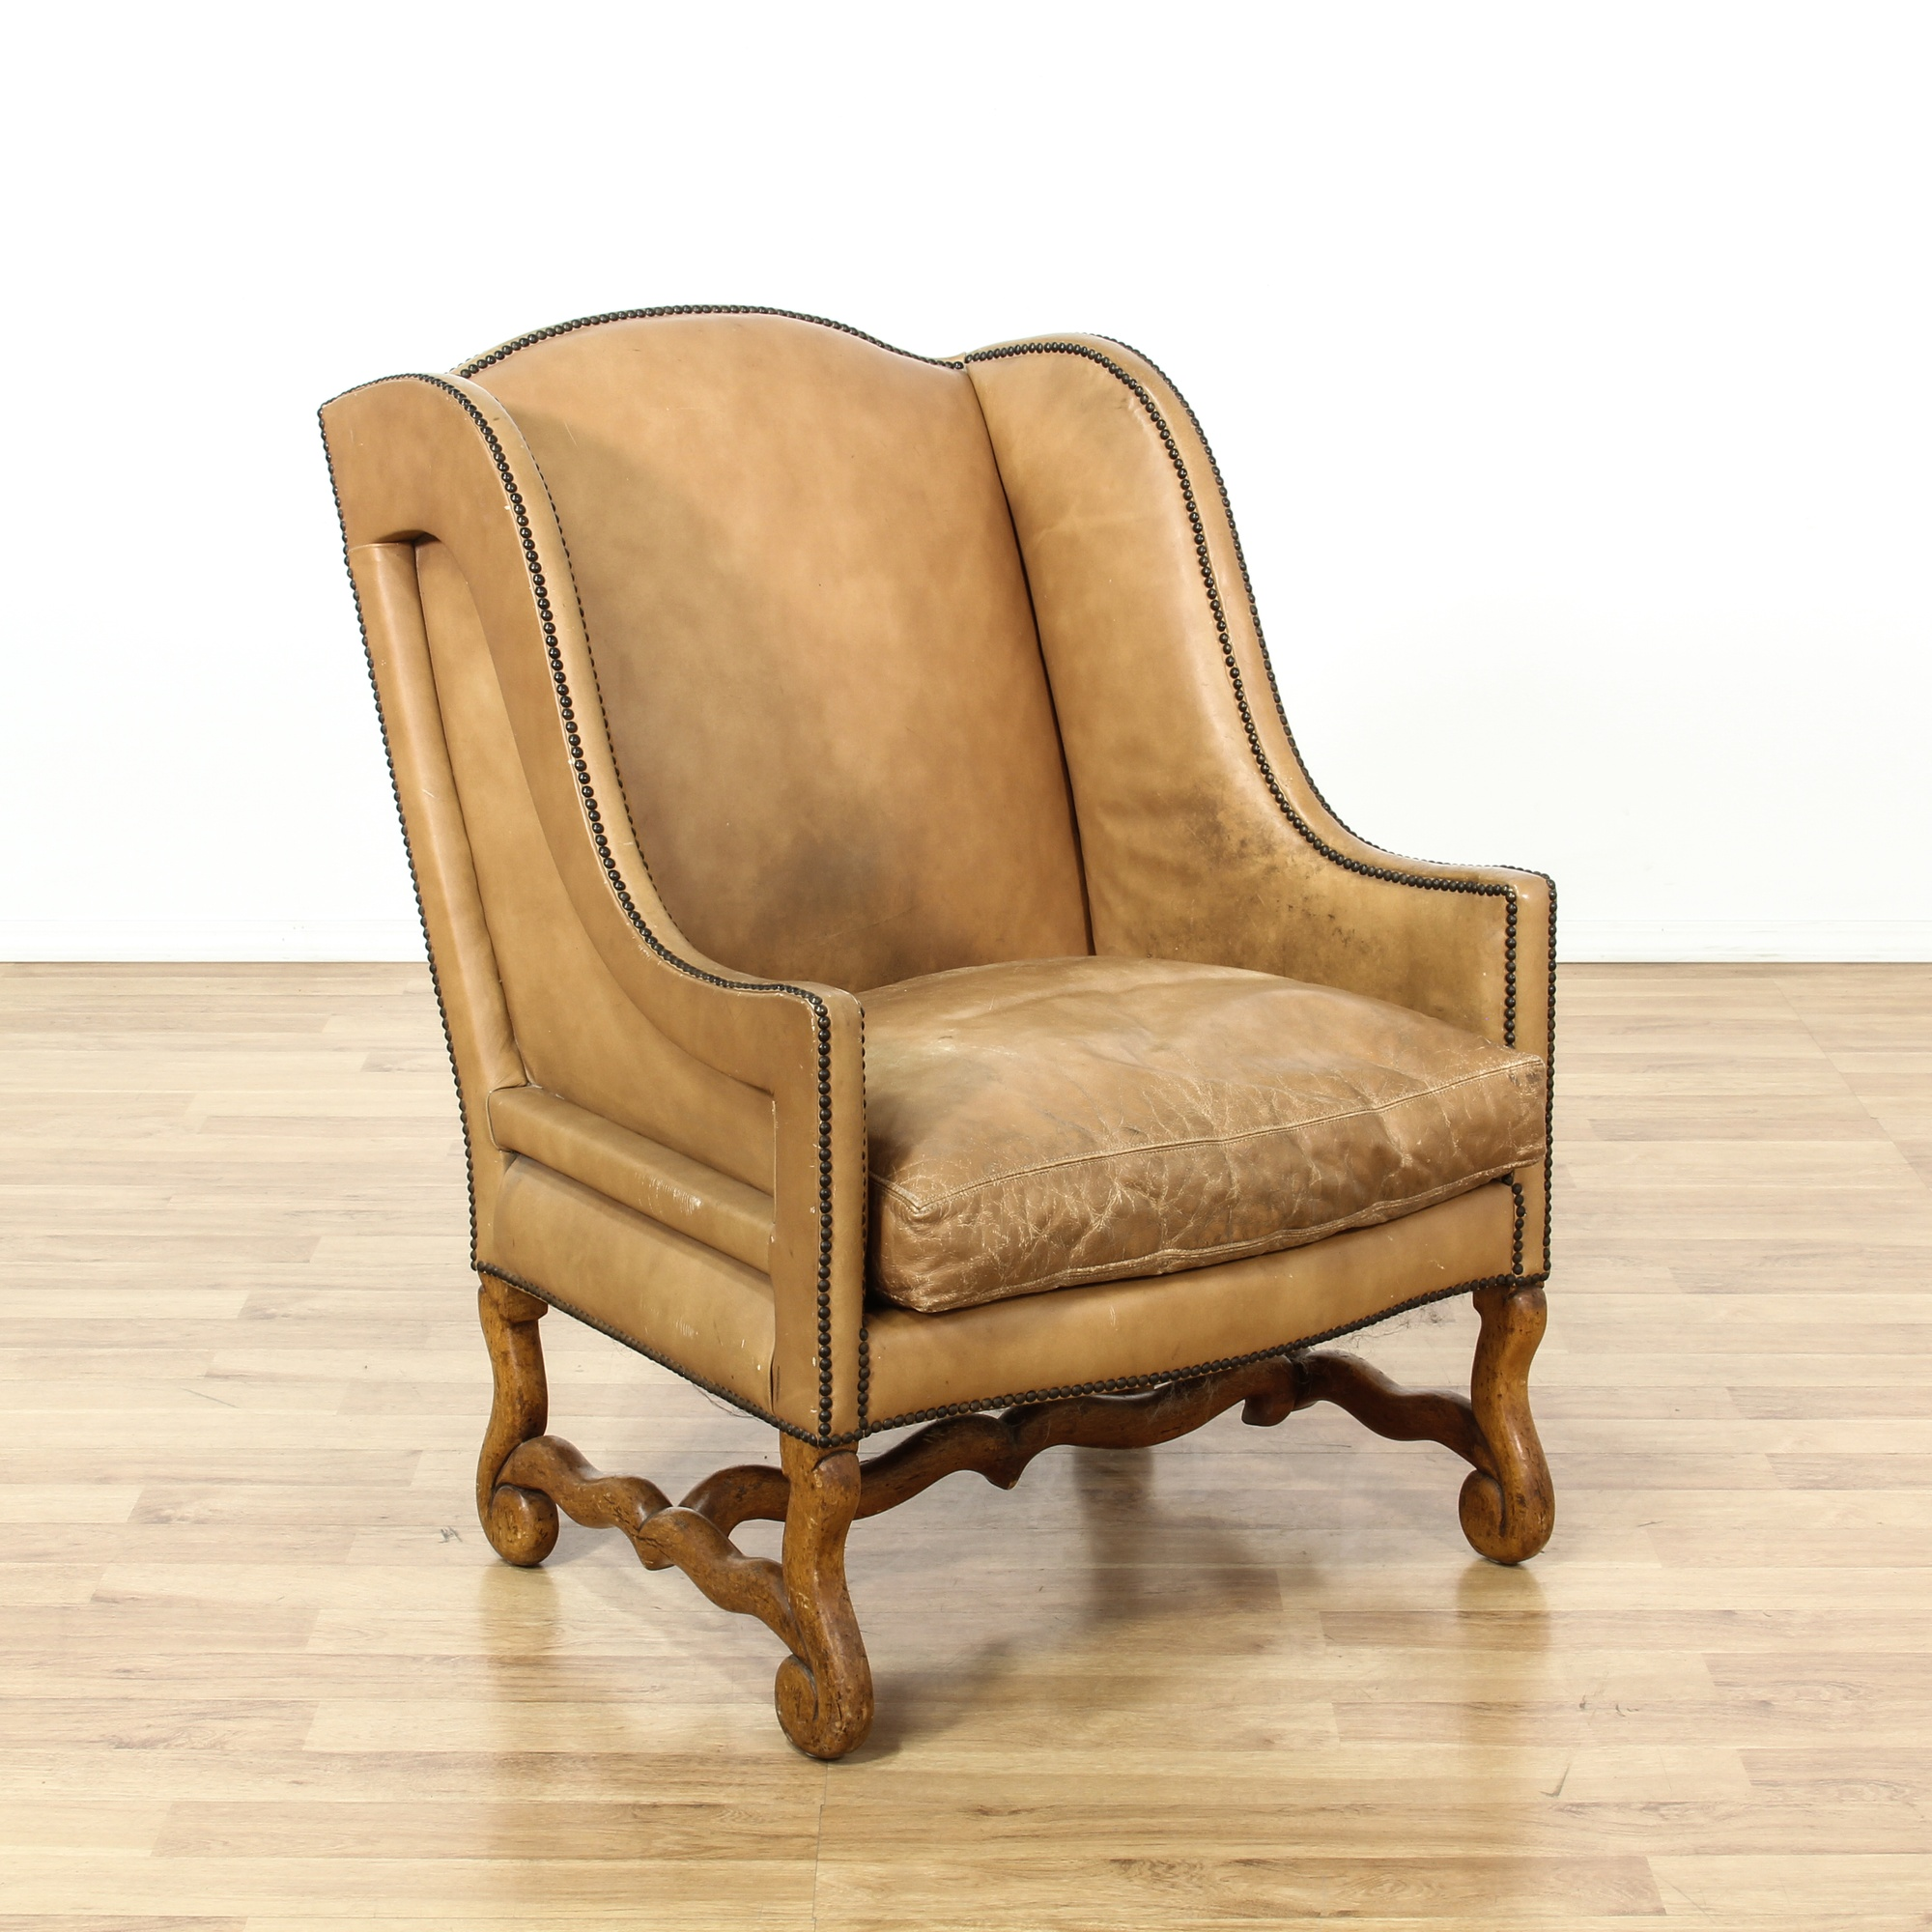 Studded Tan Leather Wingback Armchair Loveseat Vintage Furniture San Diego Los Angeles